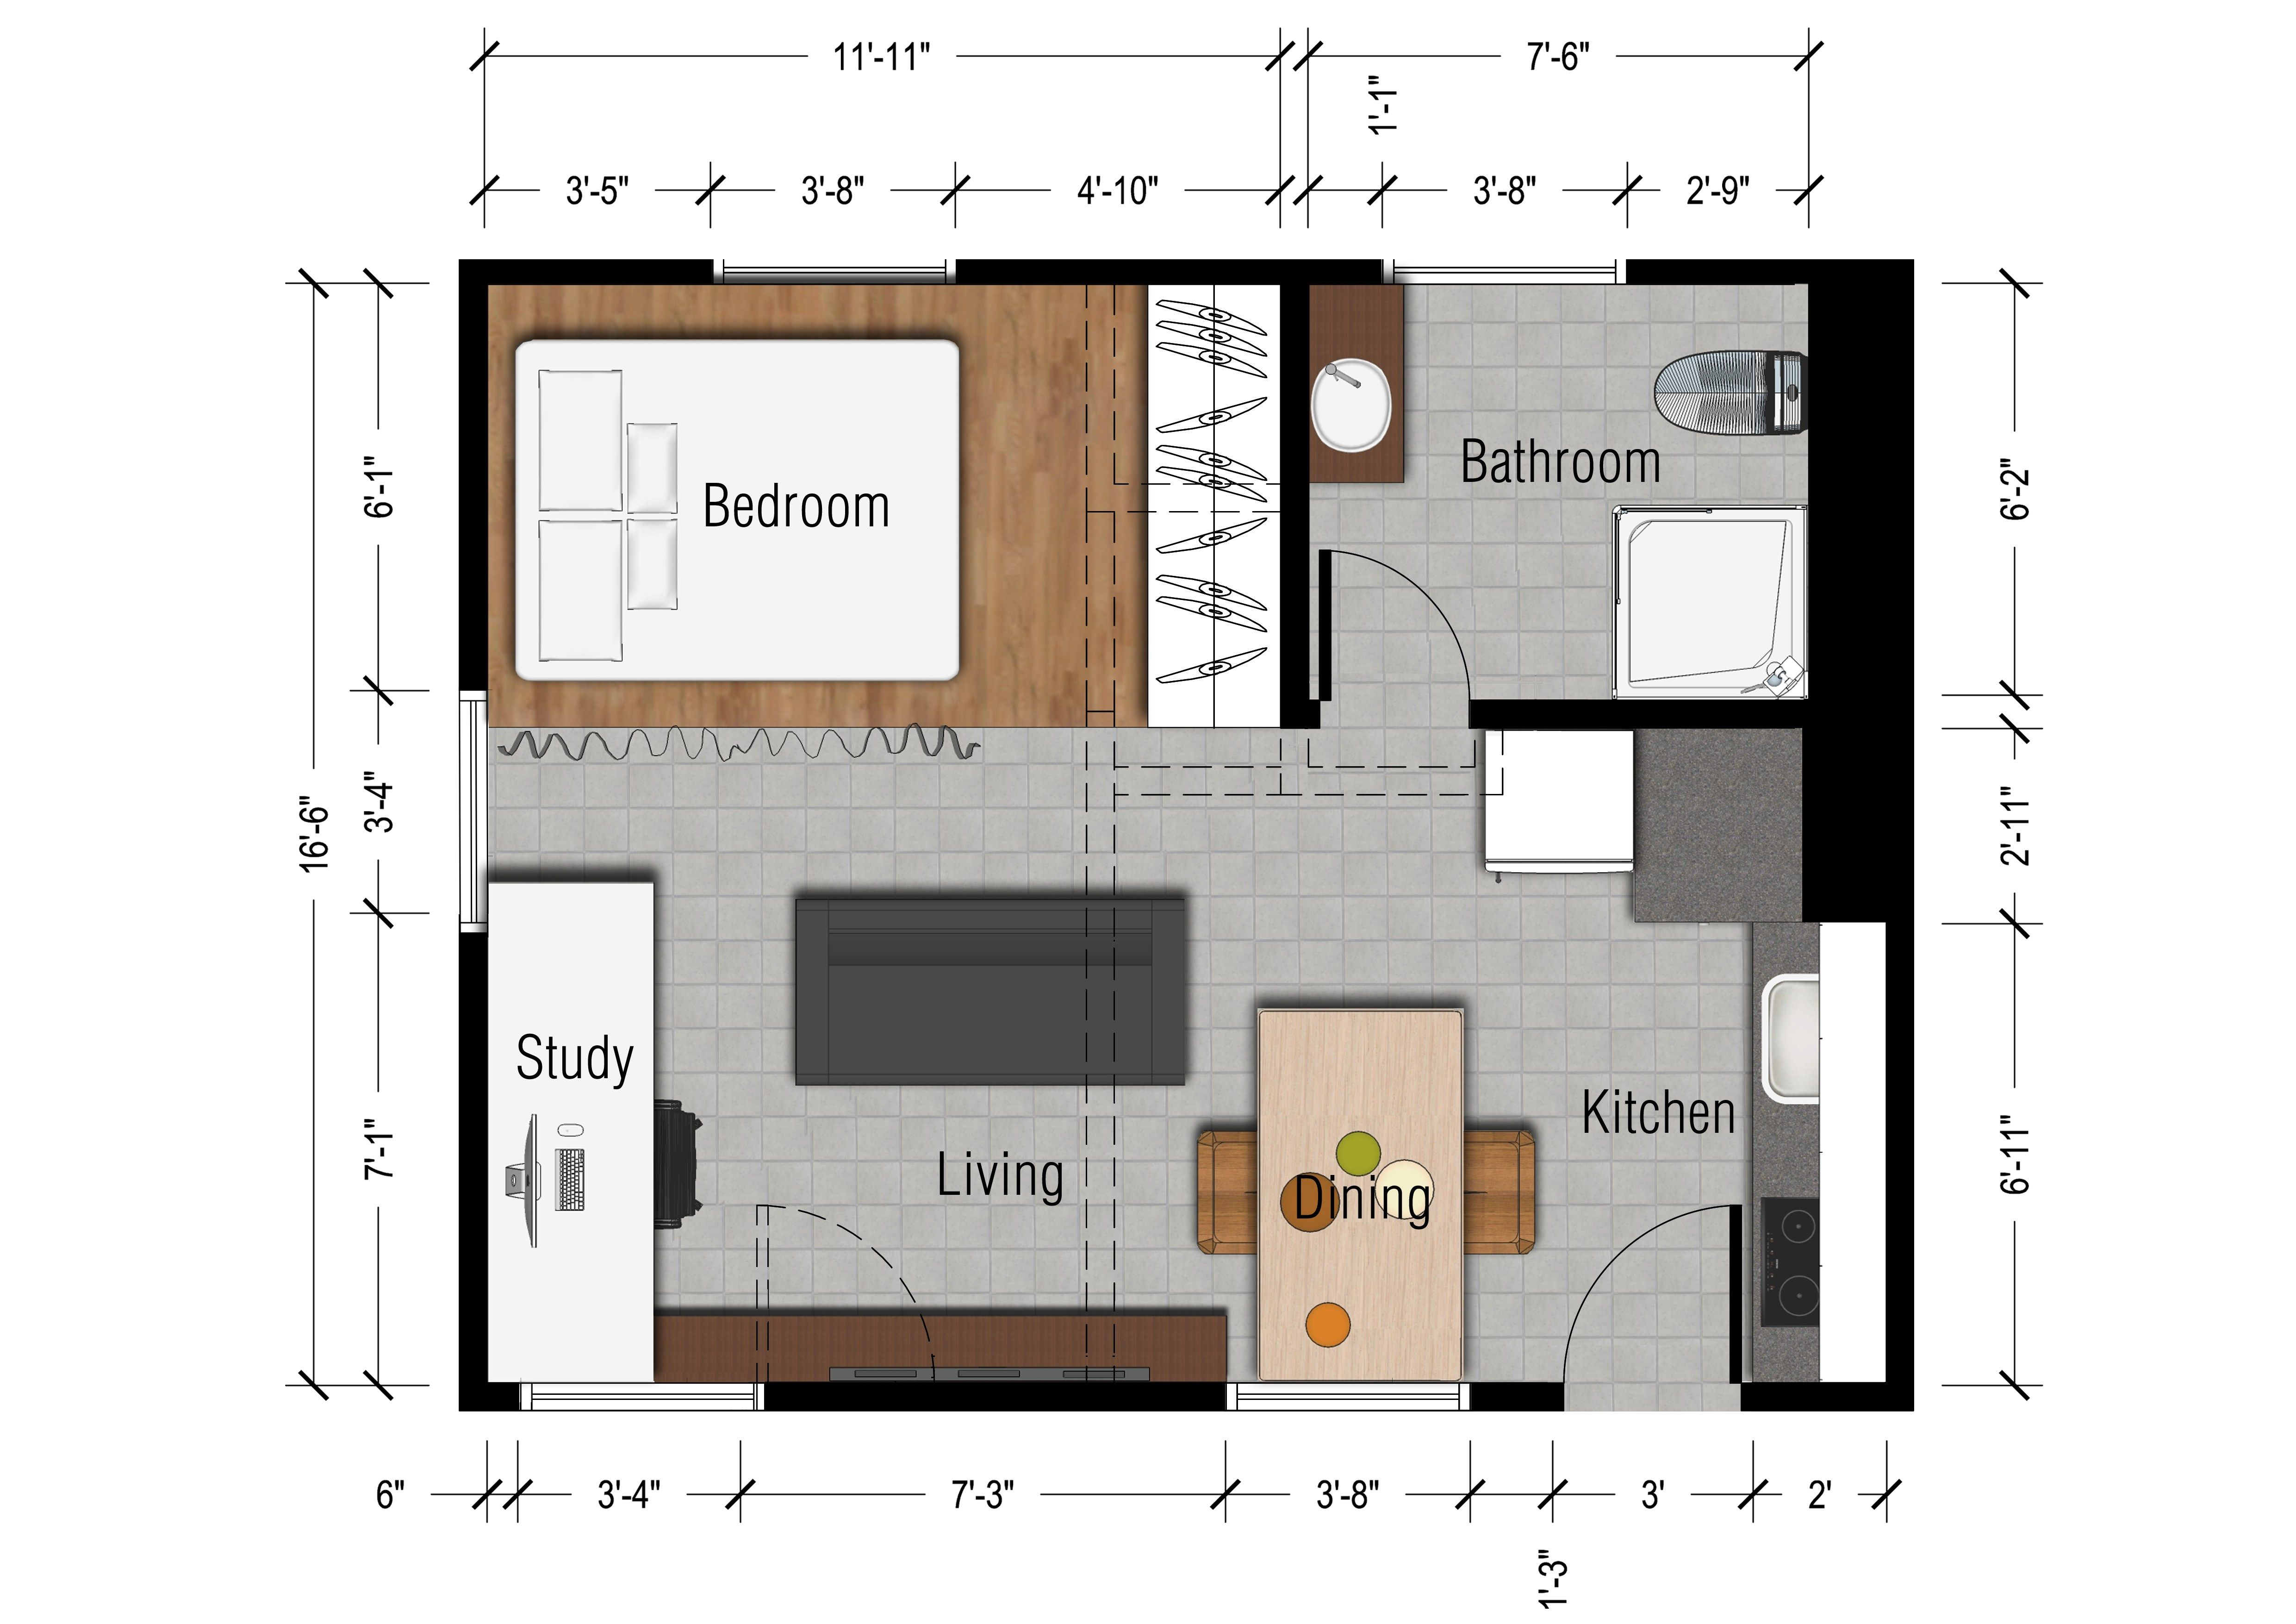 1 Bedroom Basement Apartment Floor Plans Basement Apartment Plans Small Neat 1 Bedroom Home S Small Apartment Plans Studio Apartment Plan Studio Floor Plans